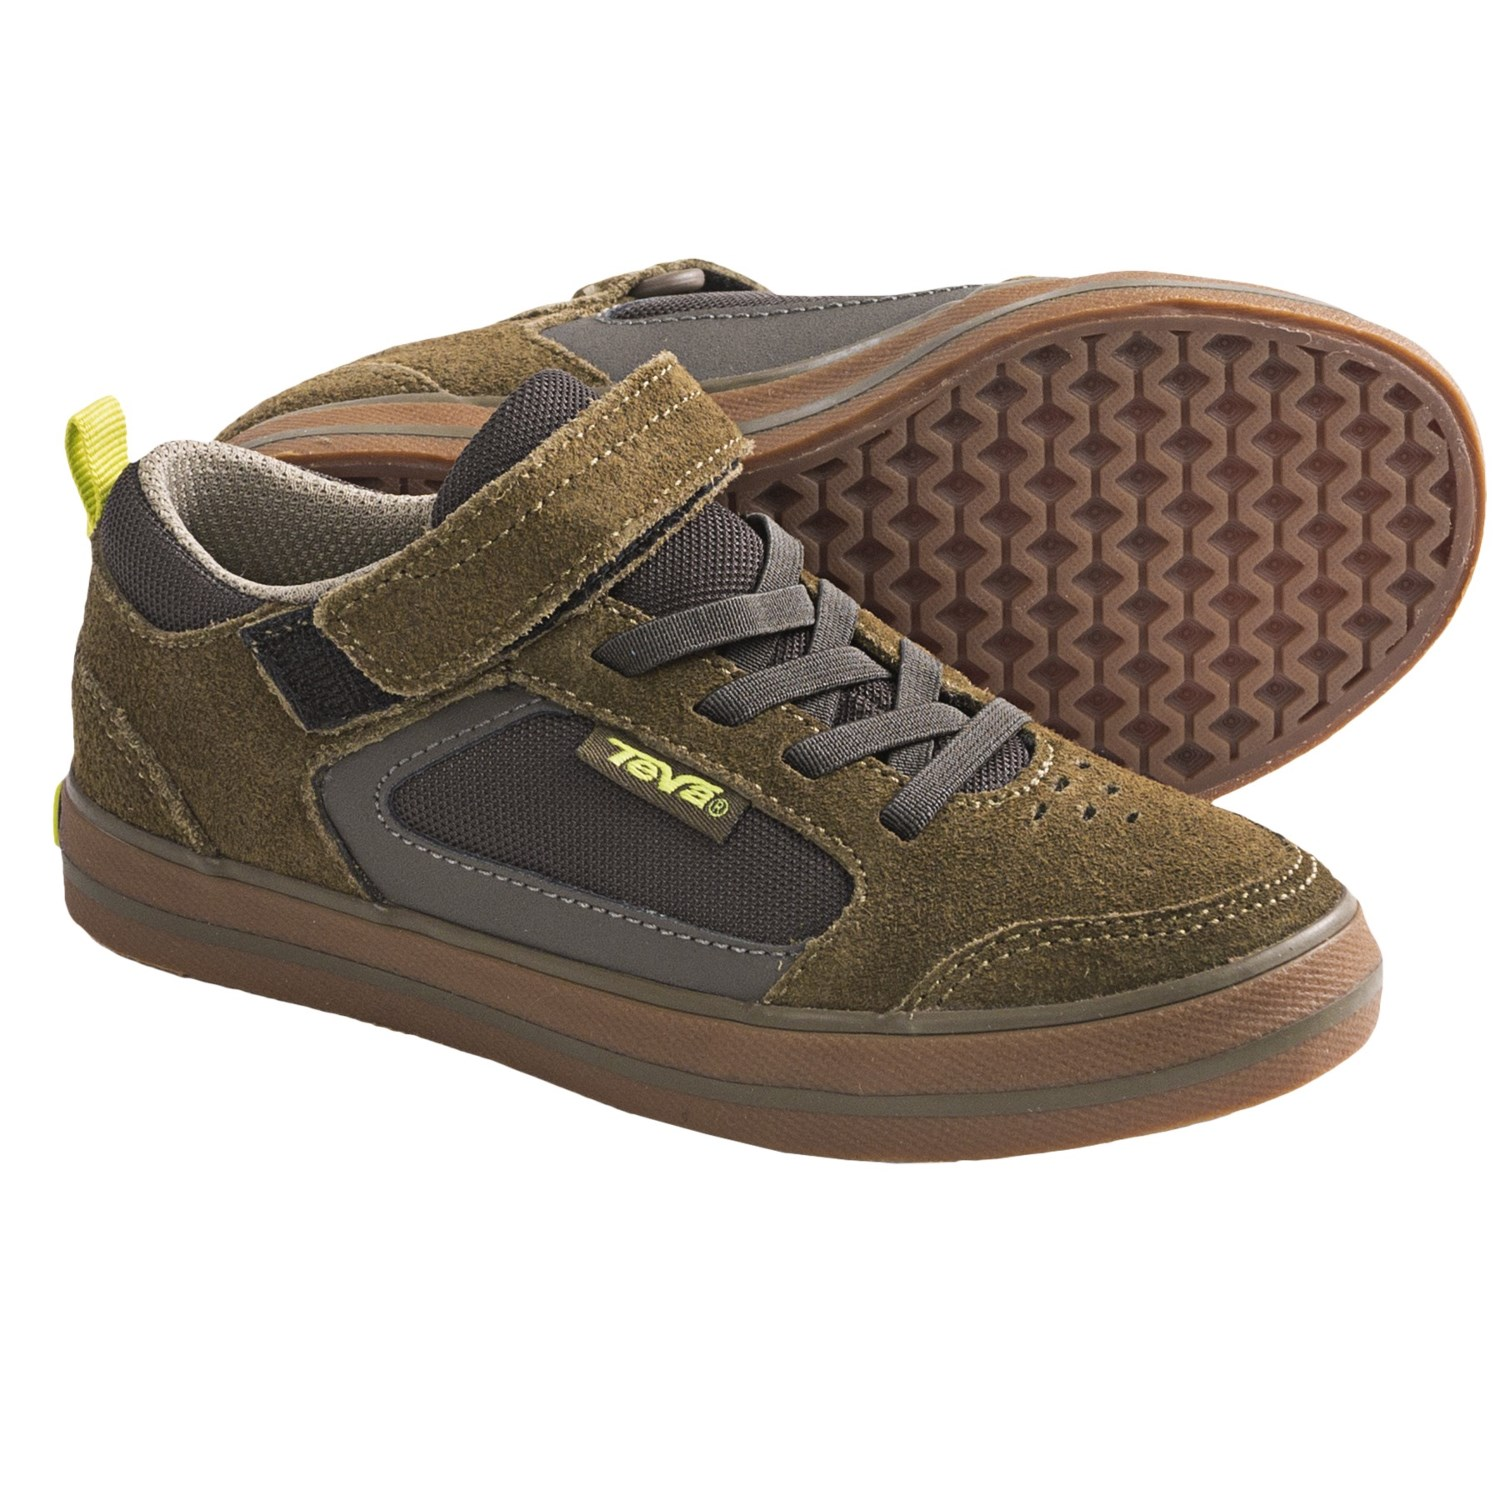 Shoes for men online Teva shoes clearance